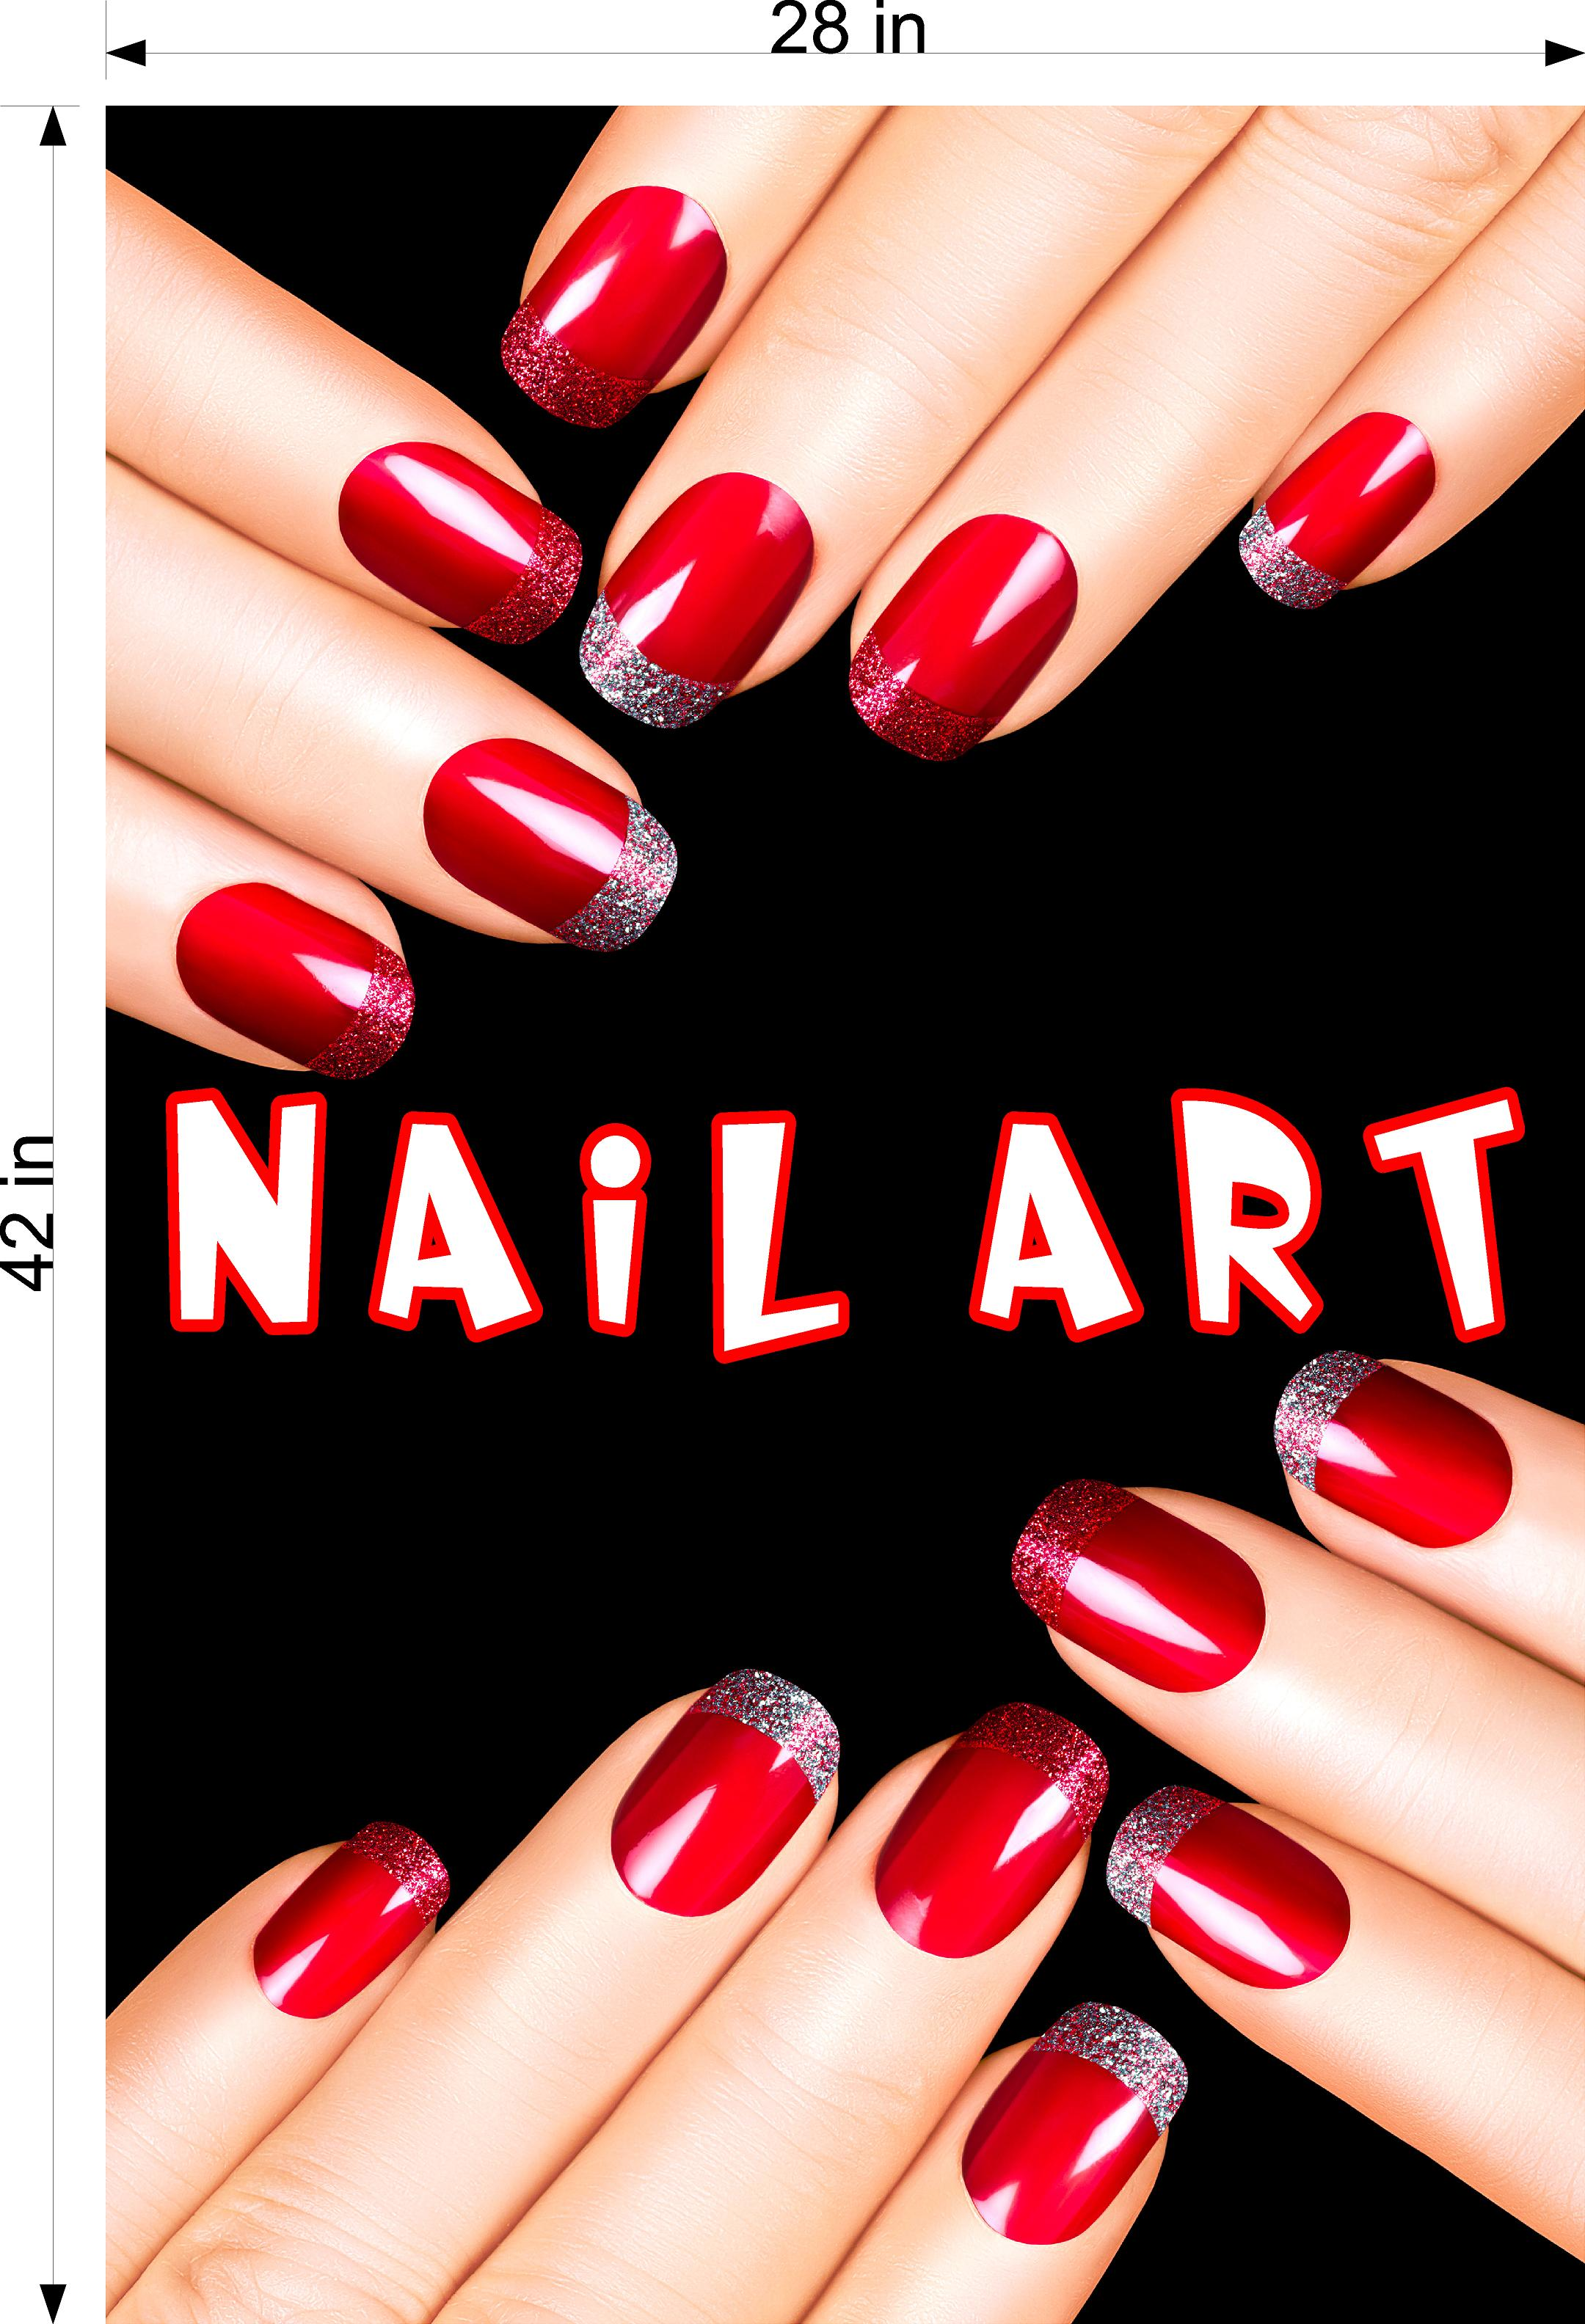 Nail Art 07 Perforated Mesh One Way Vision See-Through Window Vinyl Salon Sign Vertical